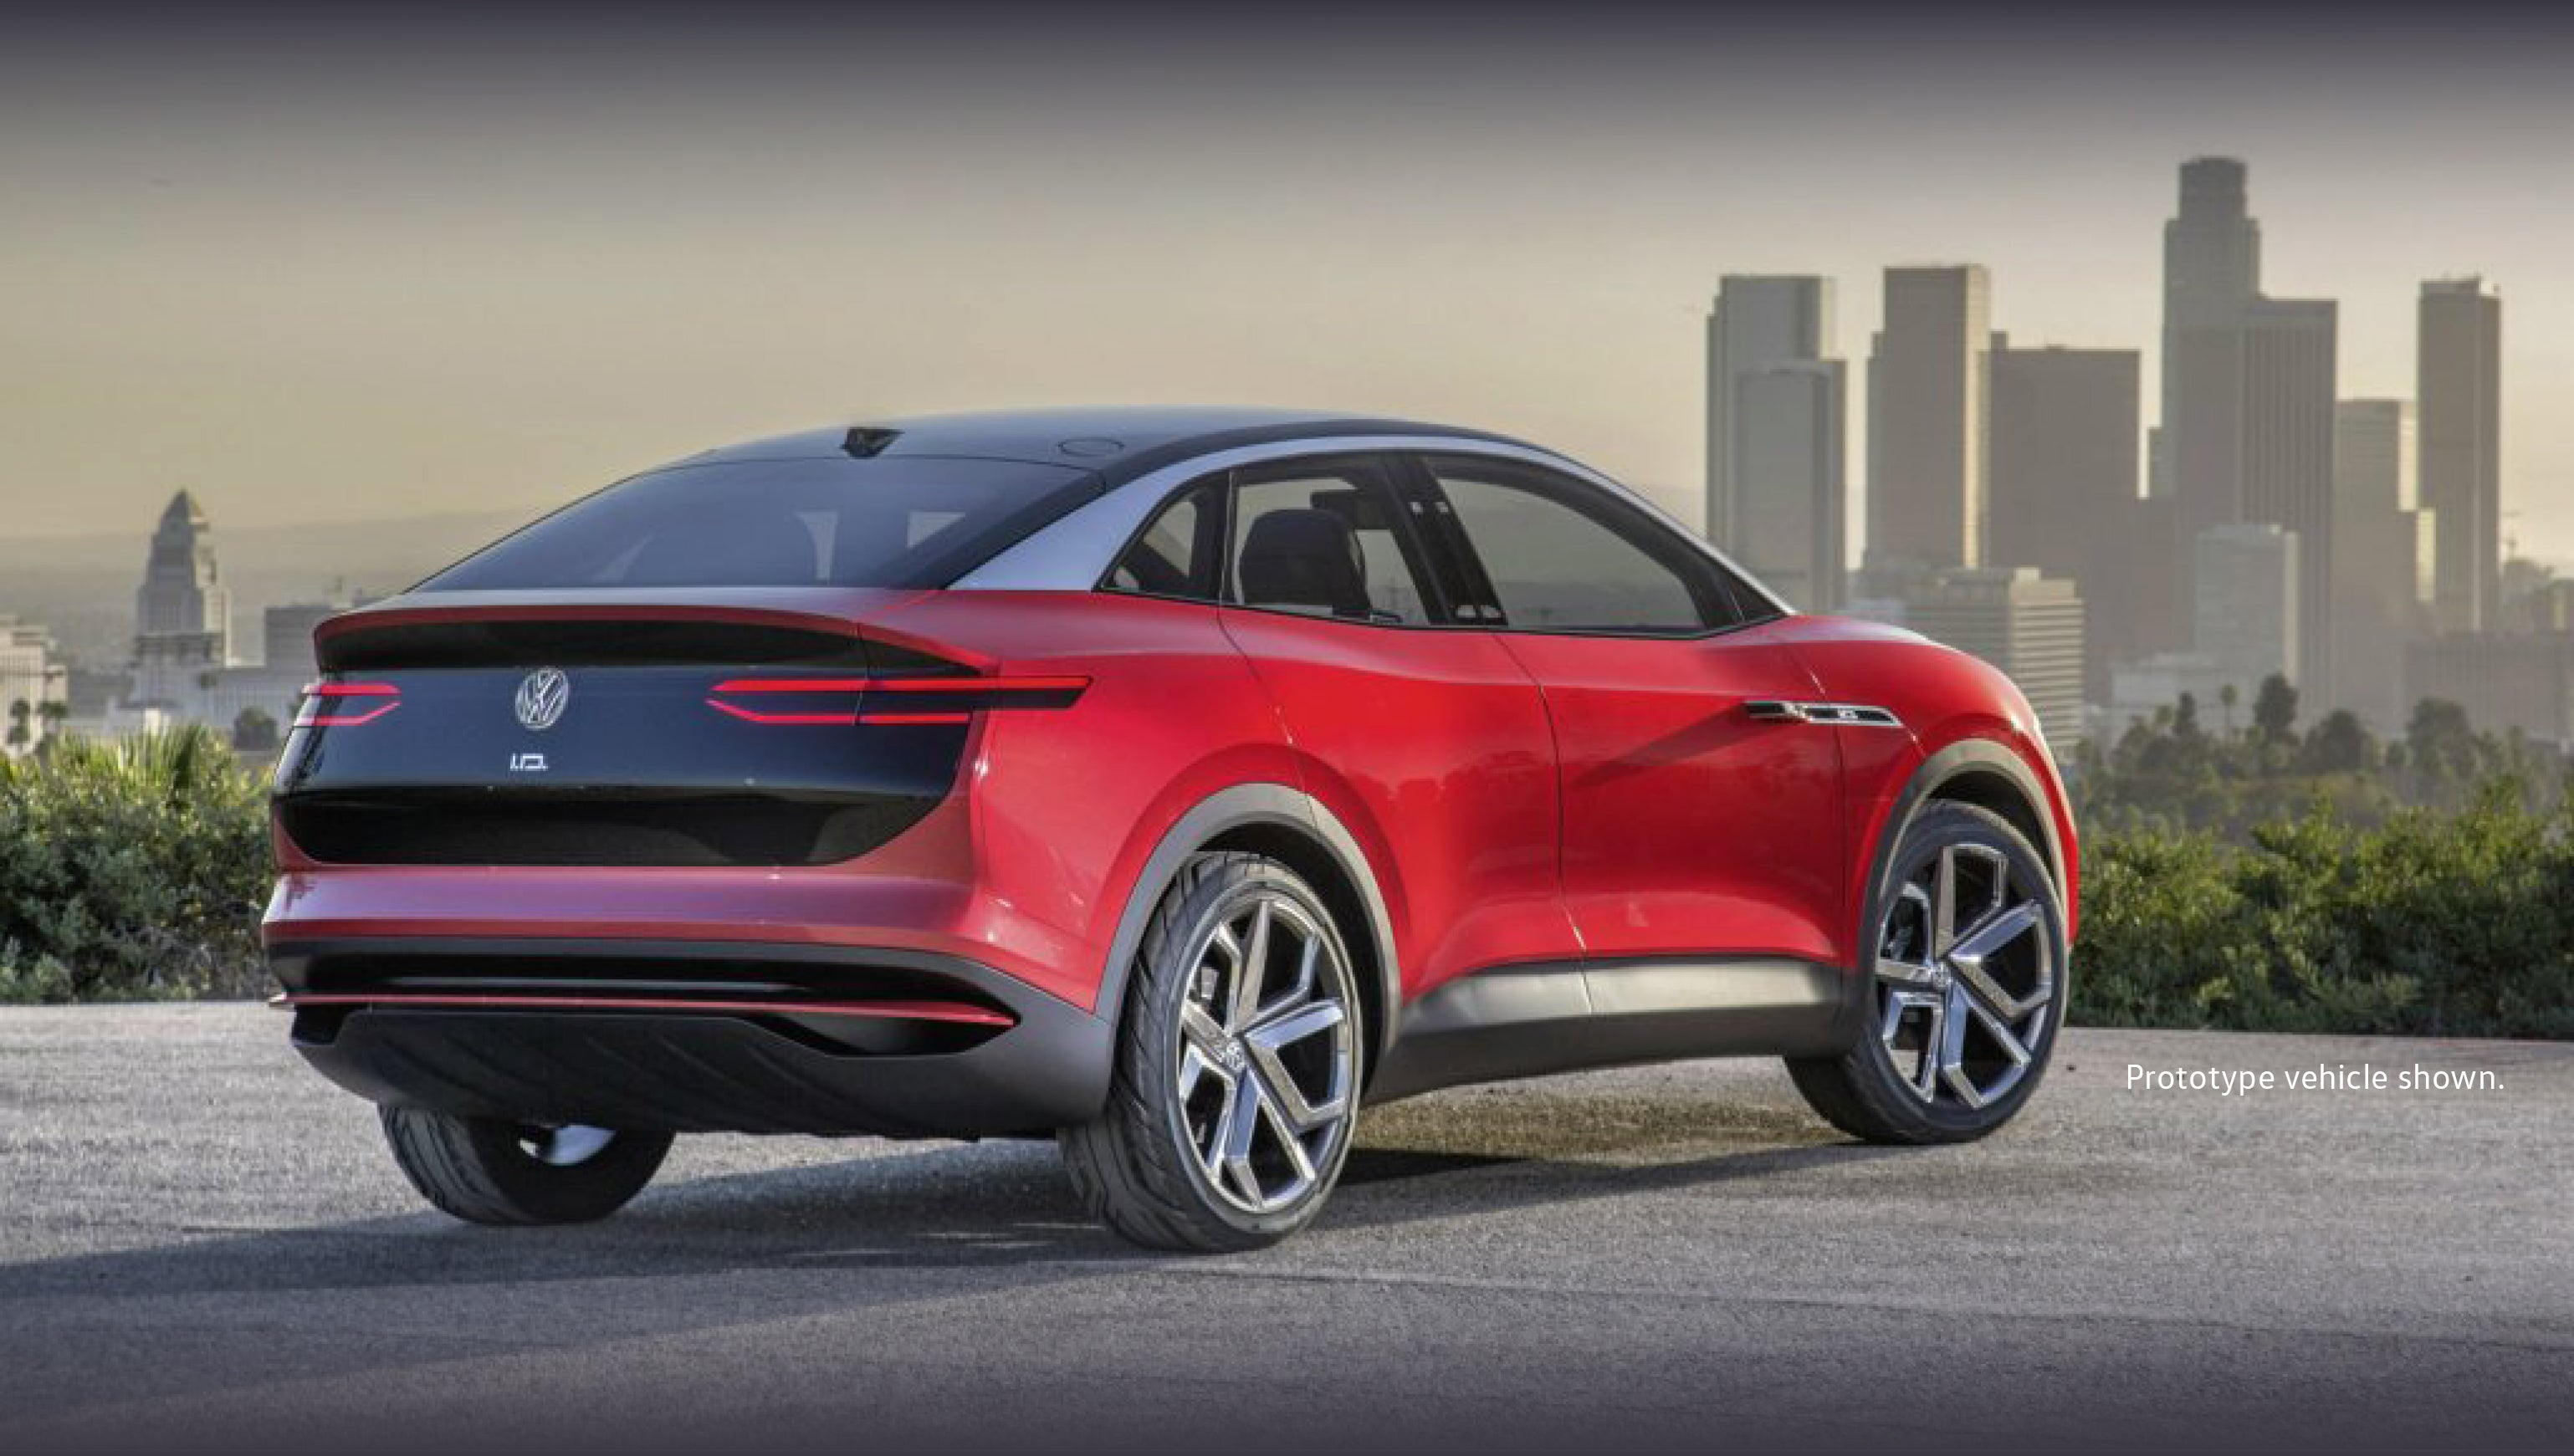 74 All New Volkswagen I D Crozz 2020 Price and Review with Volkswagen I D Crozz 2020